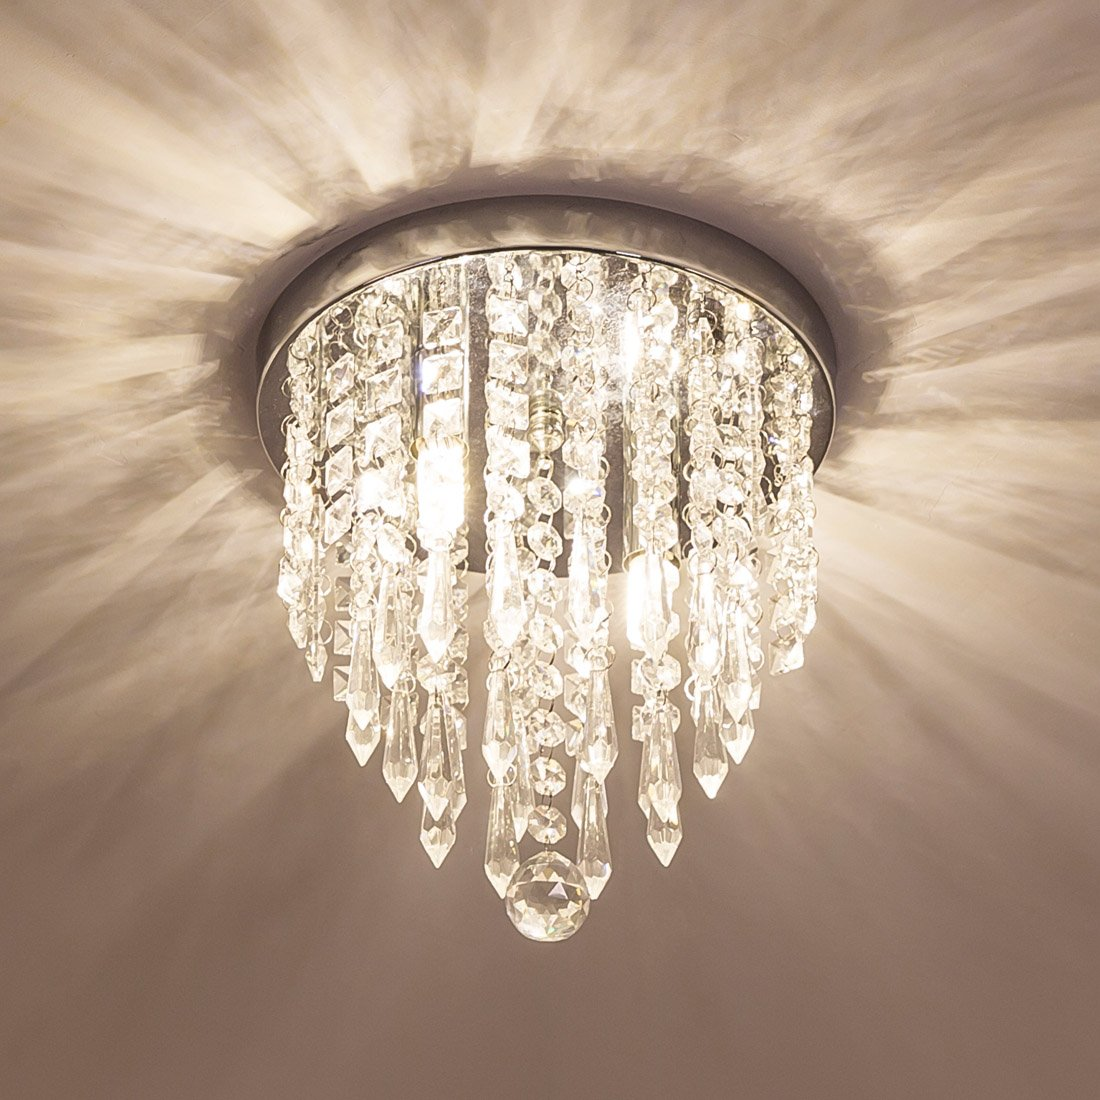 Great Lifeholder Mini Chandelier Crystal Chandelier Lighting Lights Flush Mount Ceiling Light